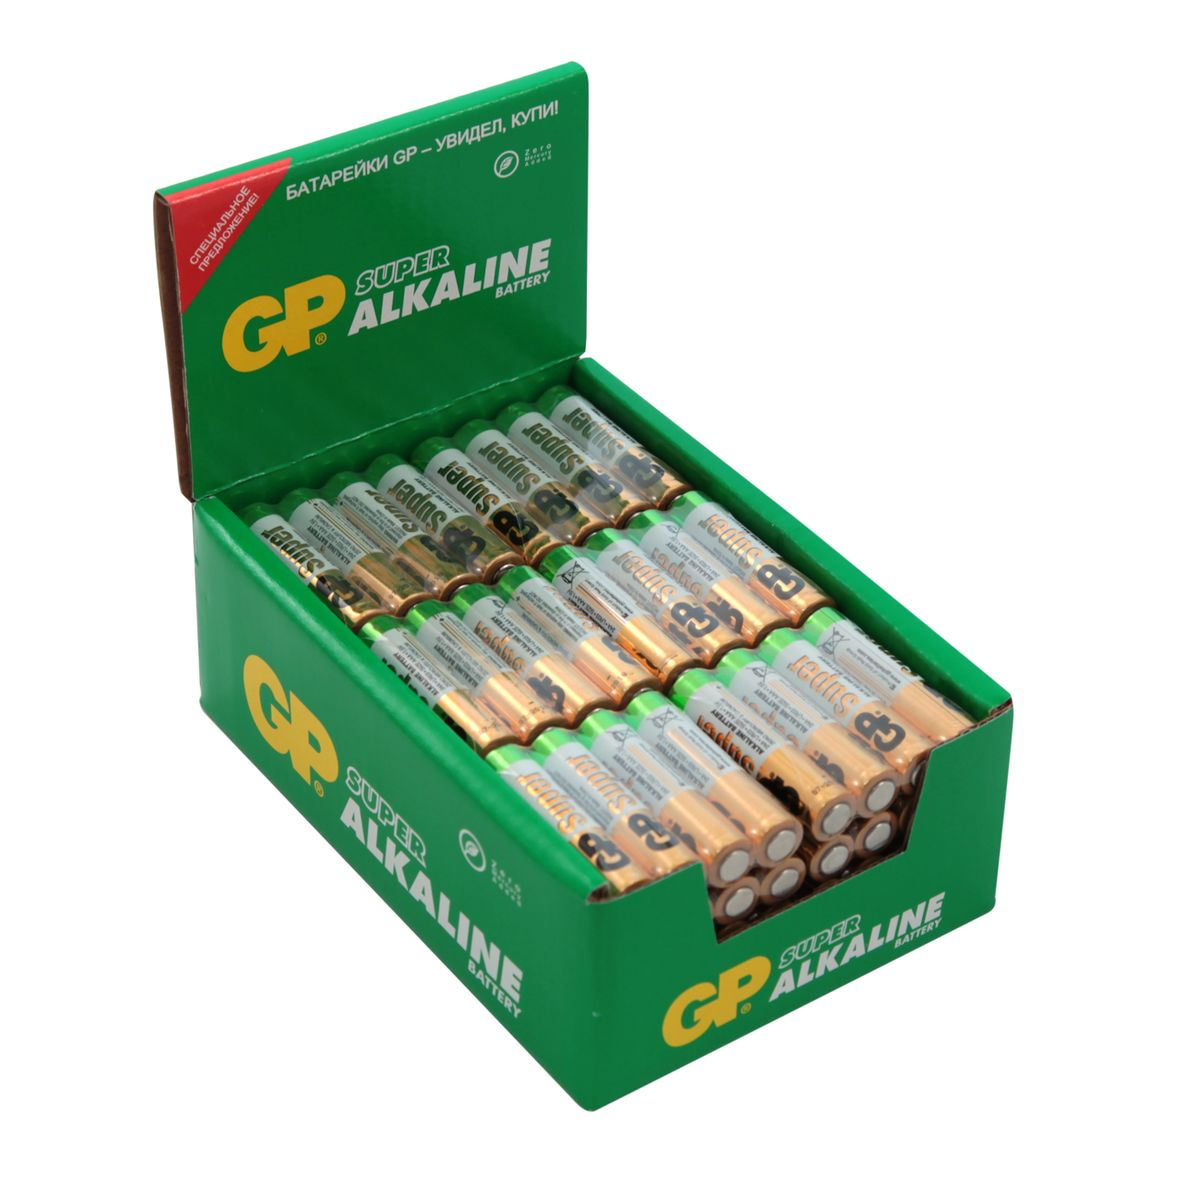 Батарейка алкалиновая GP Batteries Super Alkaline, тип ААА, 96 шт ag1 lr621 1 55v alkaline cell button batteries 10 piece pack